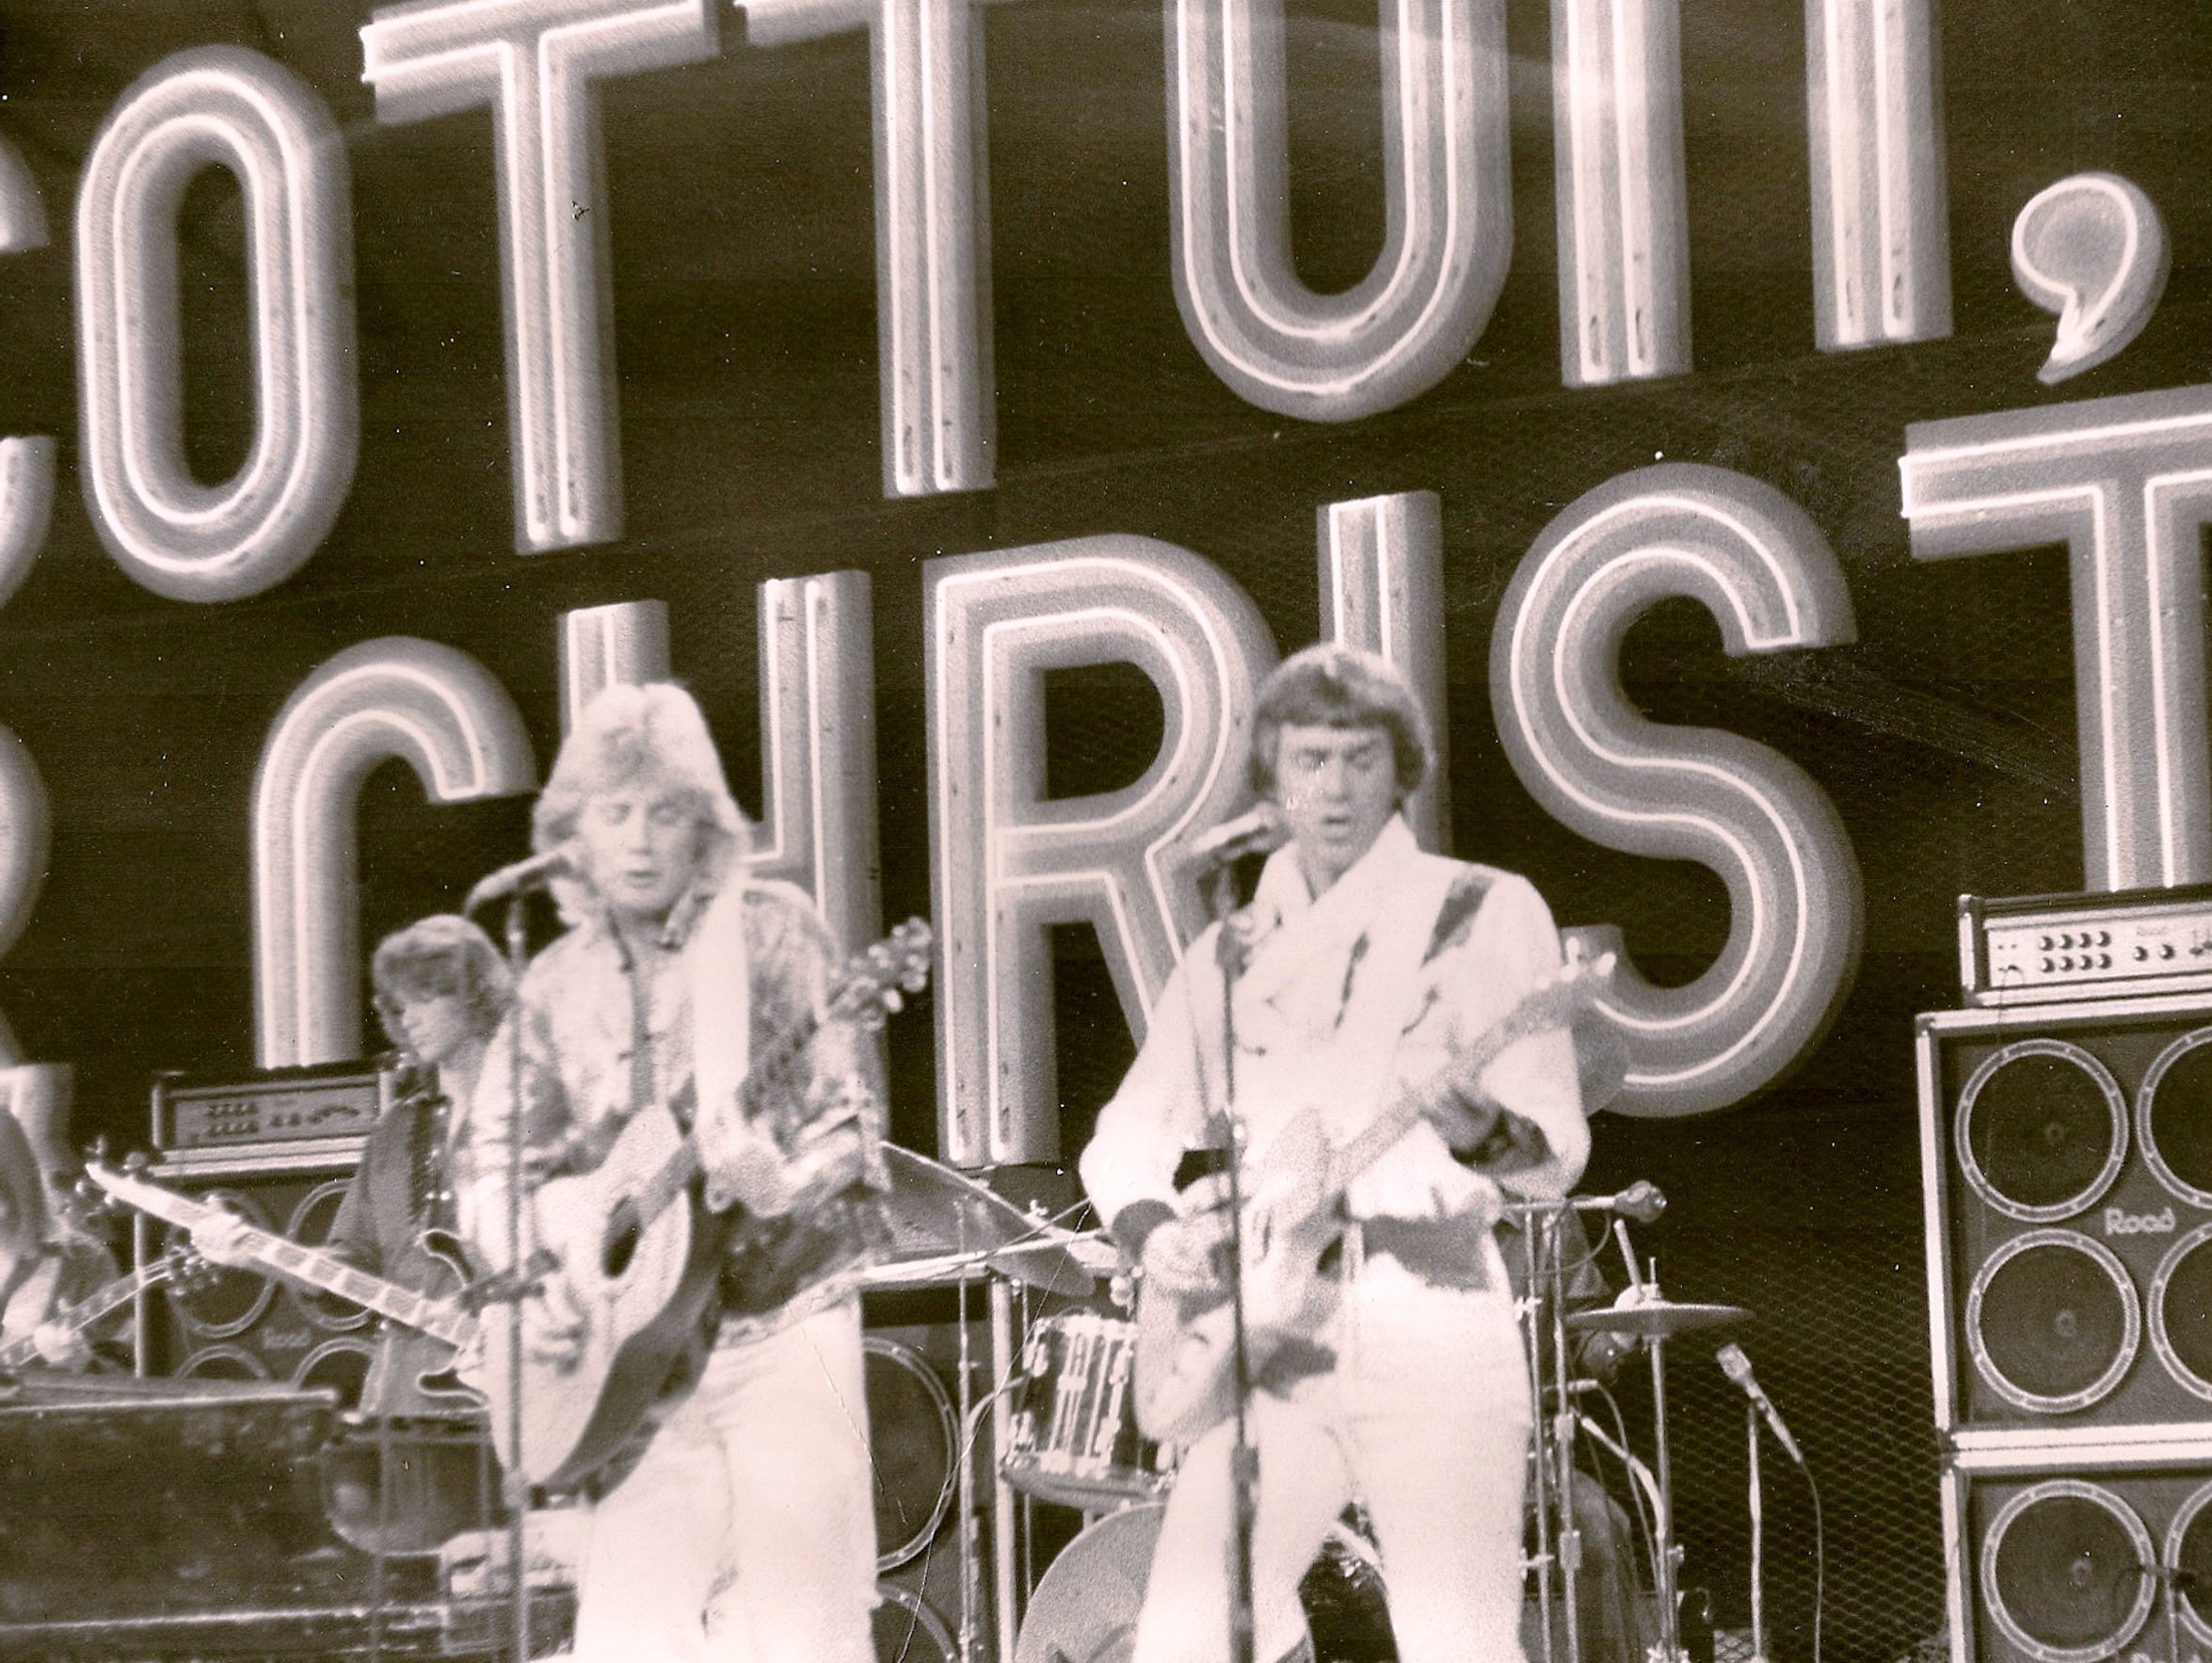 Chris Christian, right, performs as a member of Cotton,